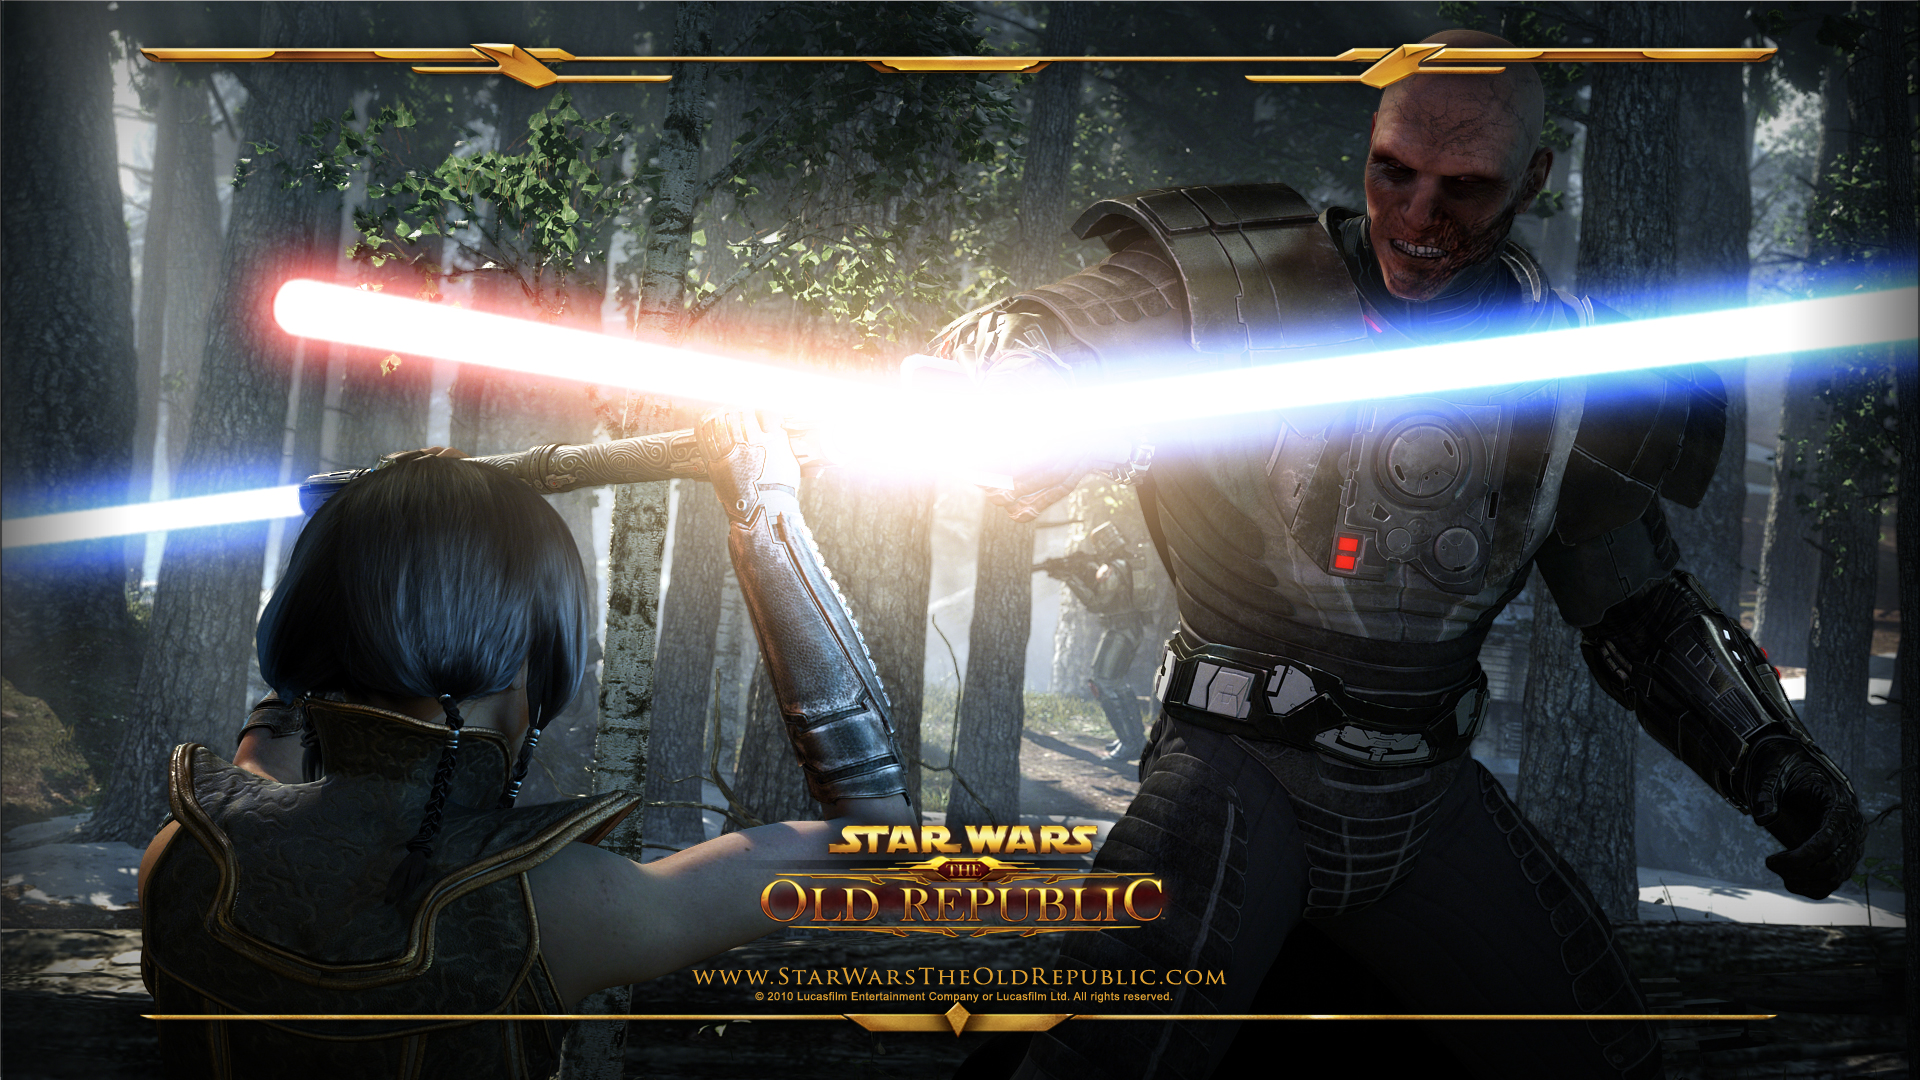 Star Wars The Old Republic wallpaper   170673 1920x1080